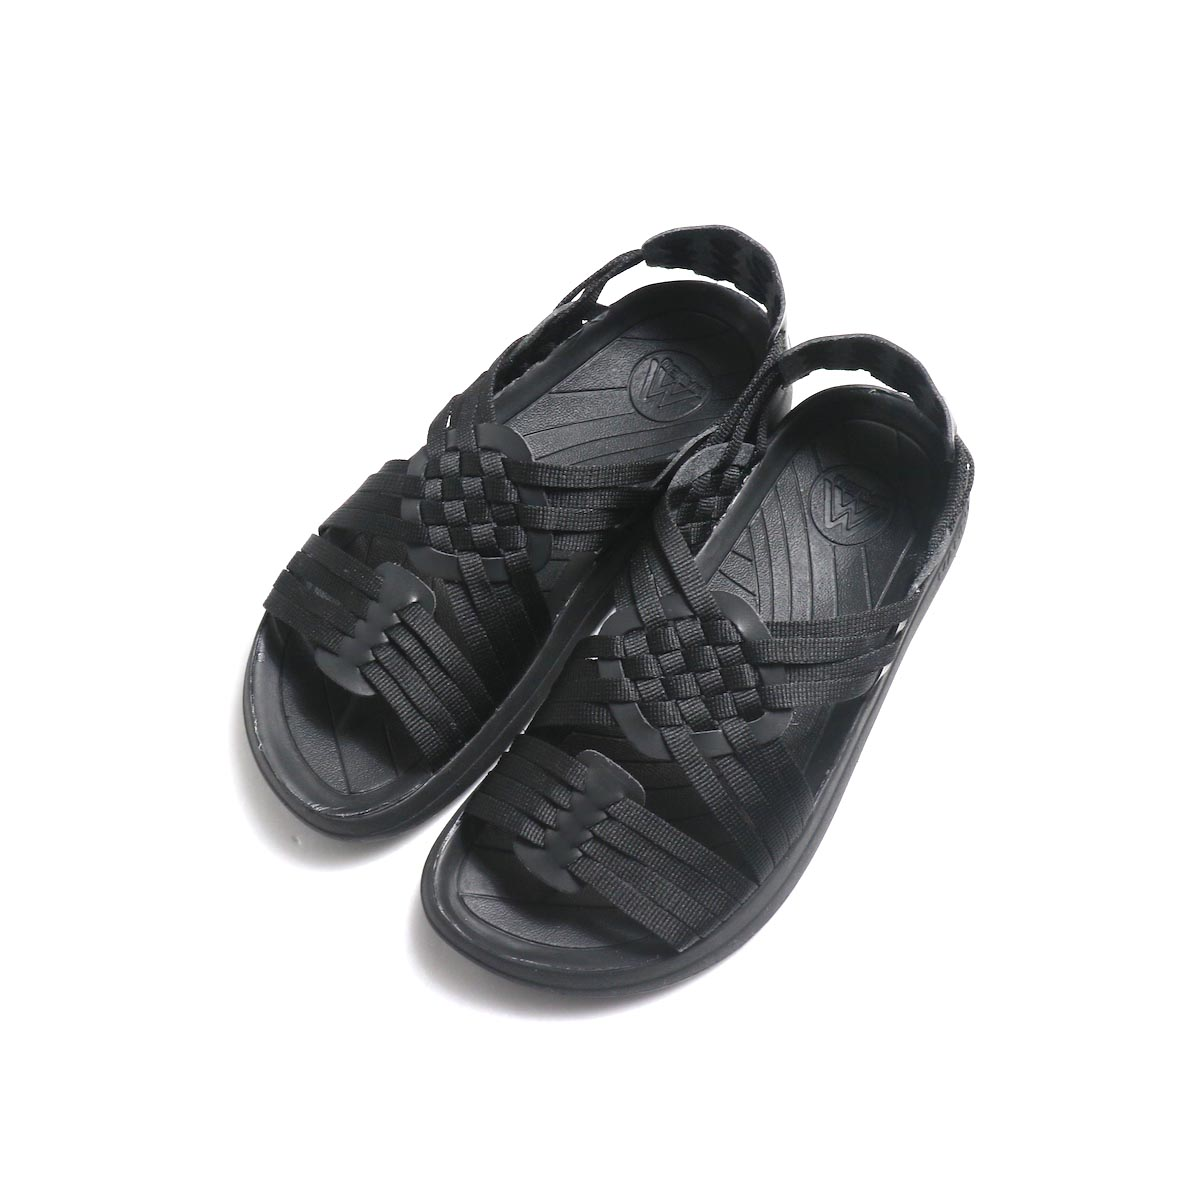 Malibu Sandals / Canyon (Nylon Weave) -Black